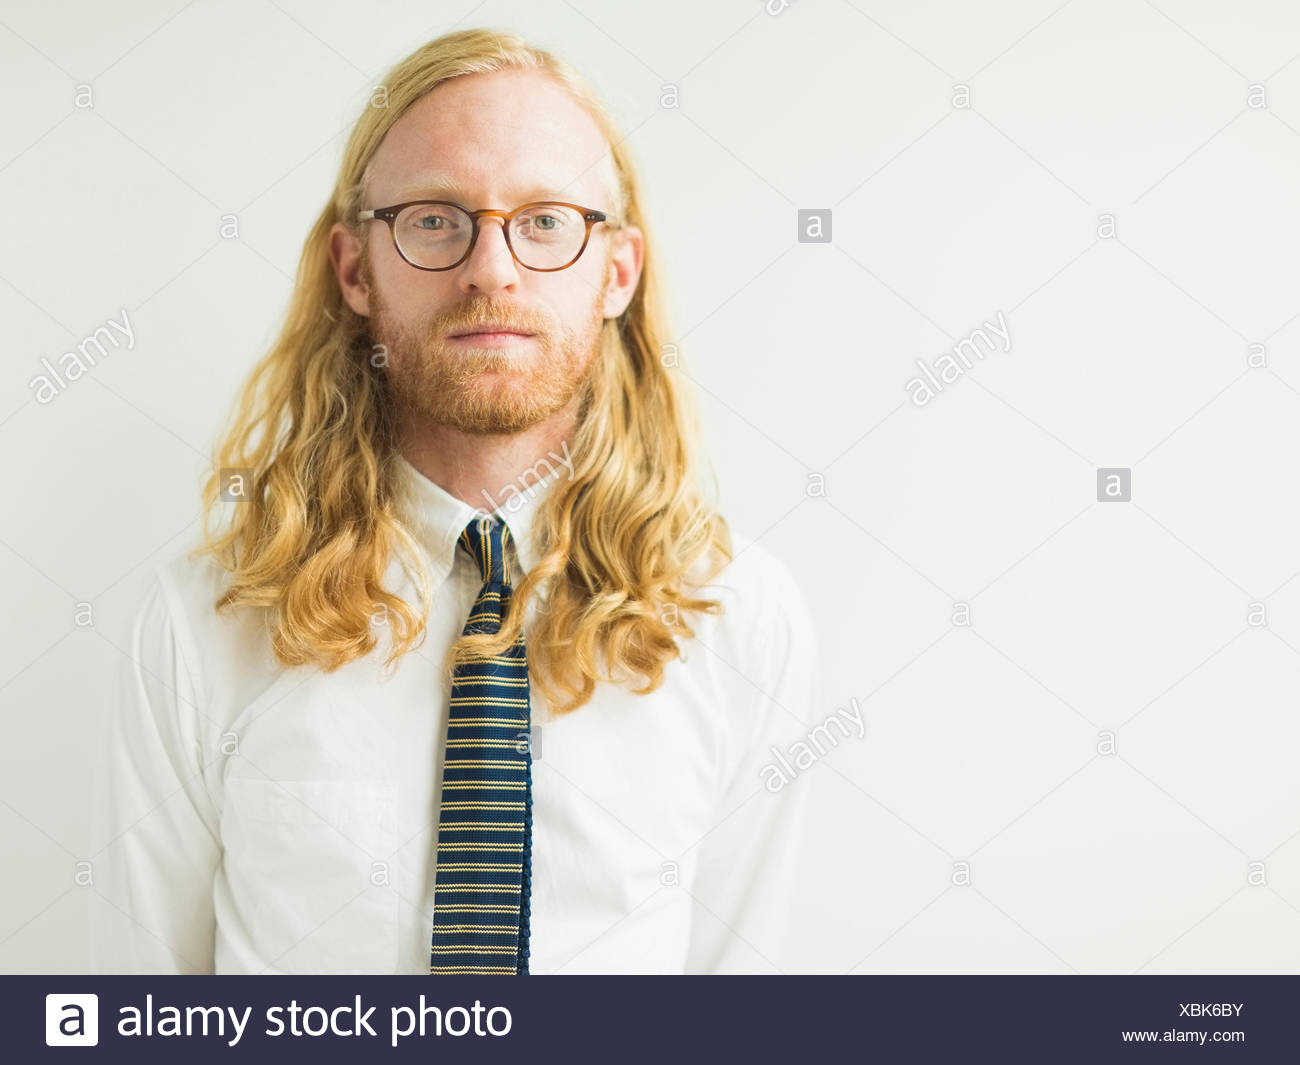 Portrait of blond man - Stock Image